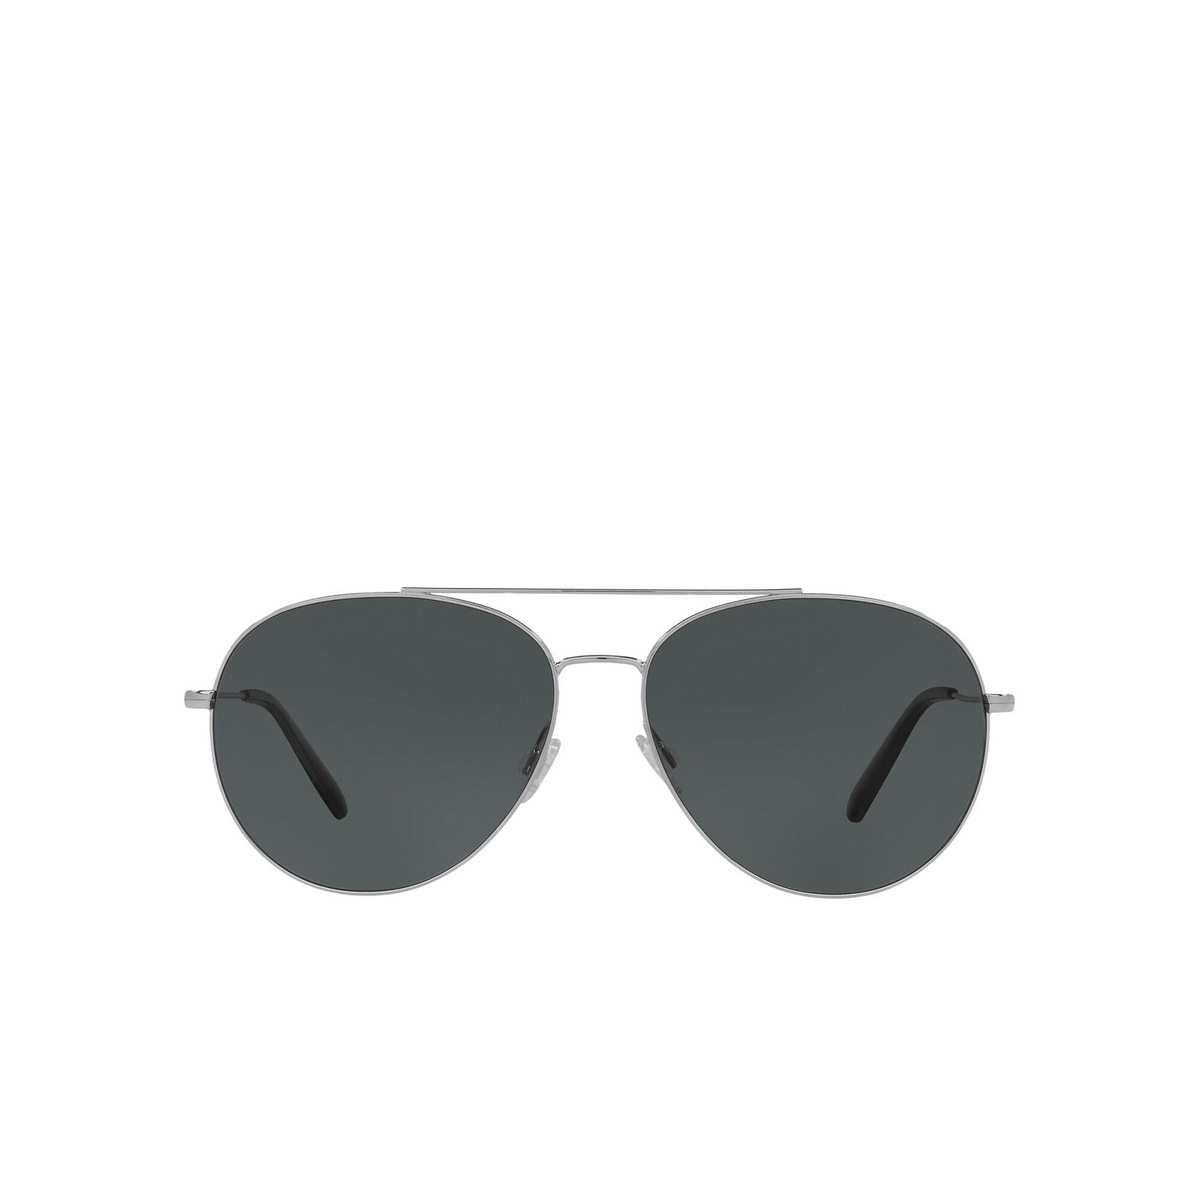 Oliver Peoples® Aviator Sunglasses: Airdale OV1286S color Silver 5036P2 - front view.